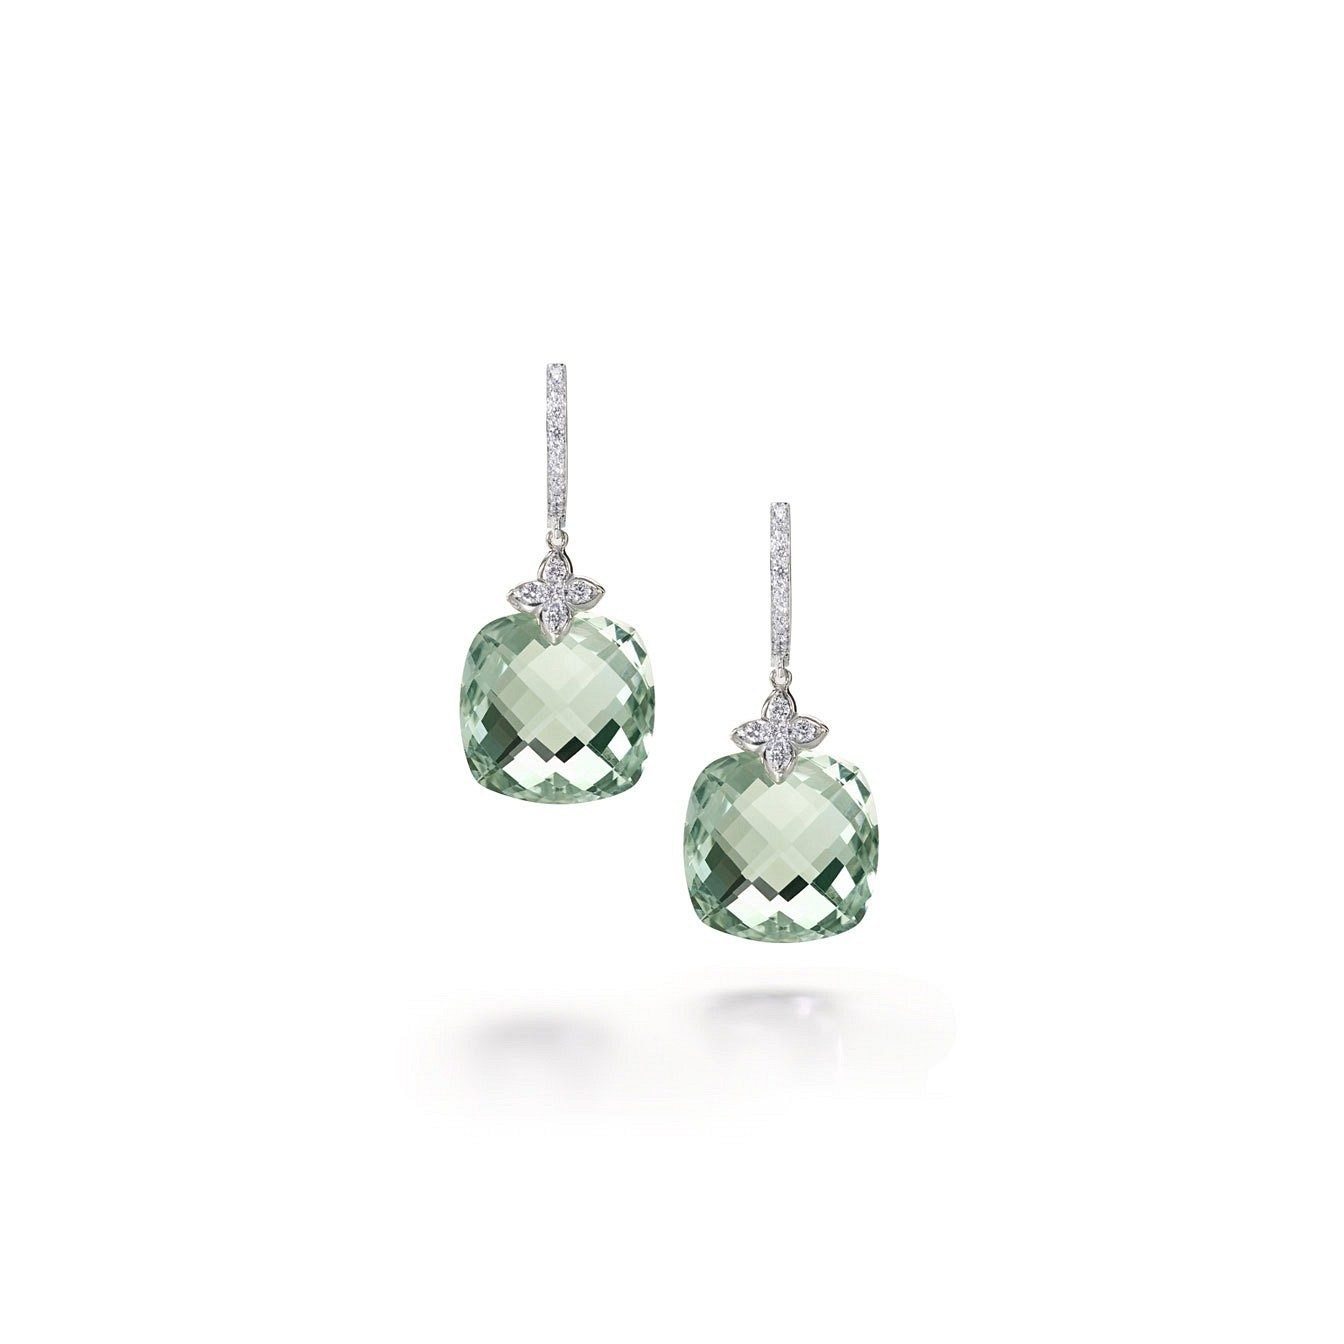 Cushion green amethyst diamond drops